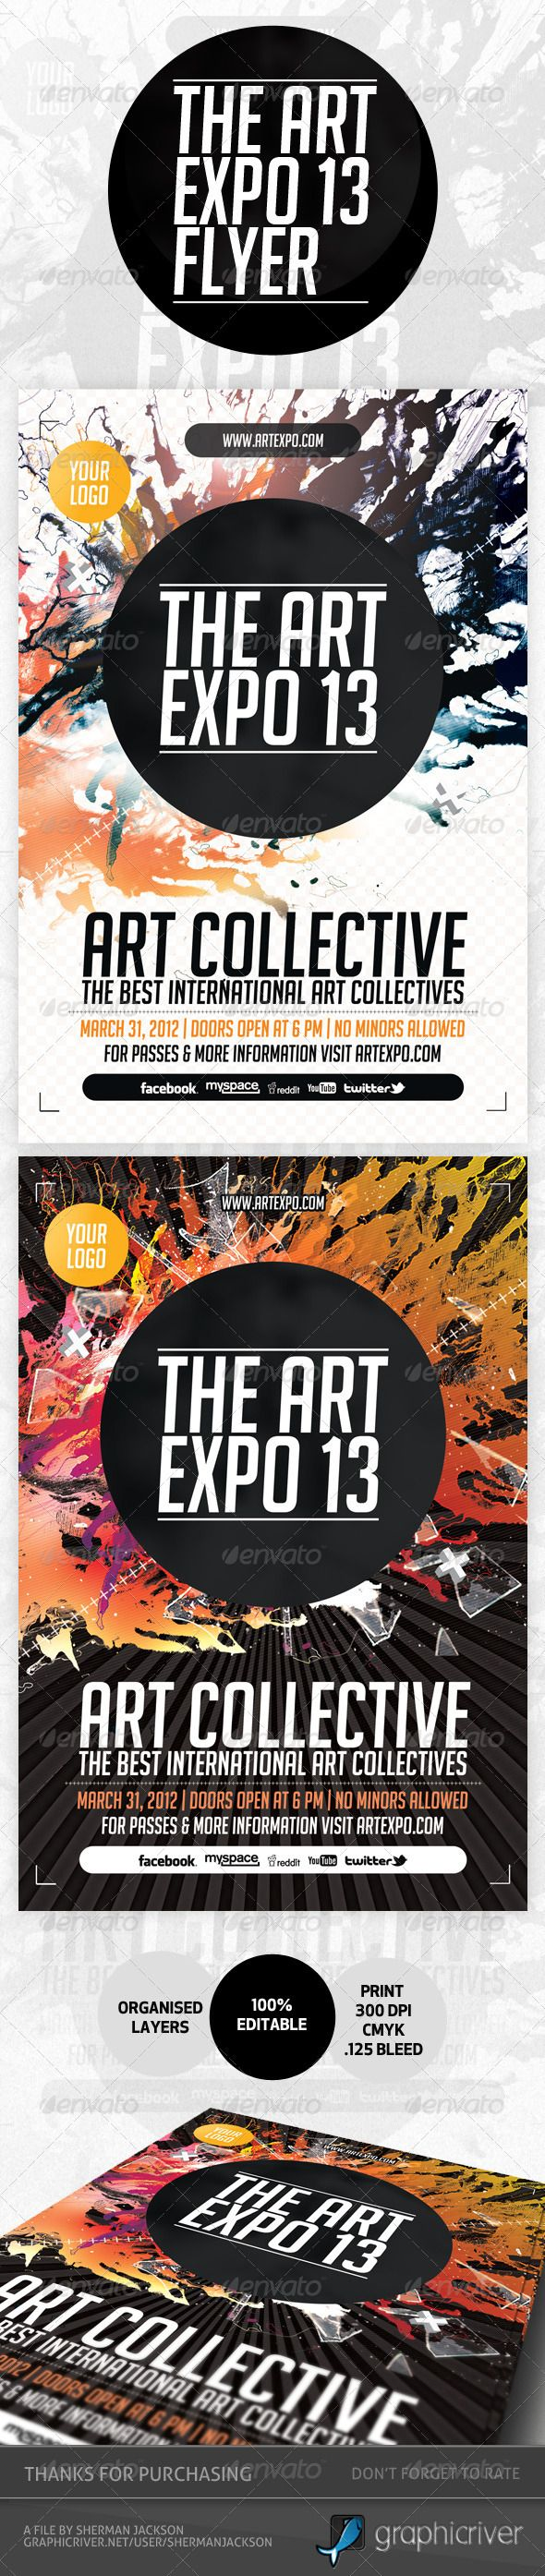 Art Expo Art Show Event Flyer Template PSD – Emerald Flyer Template